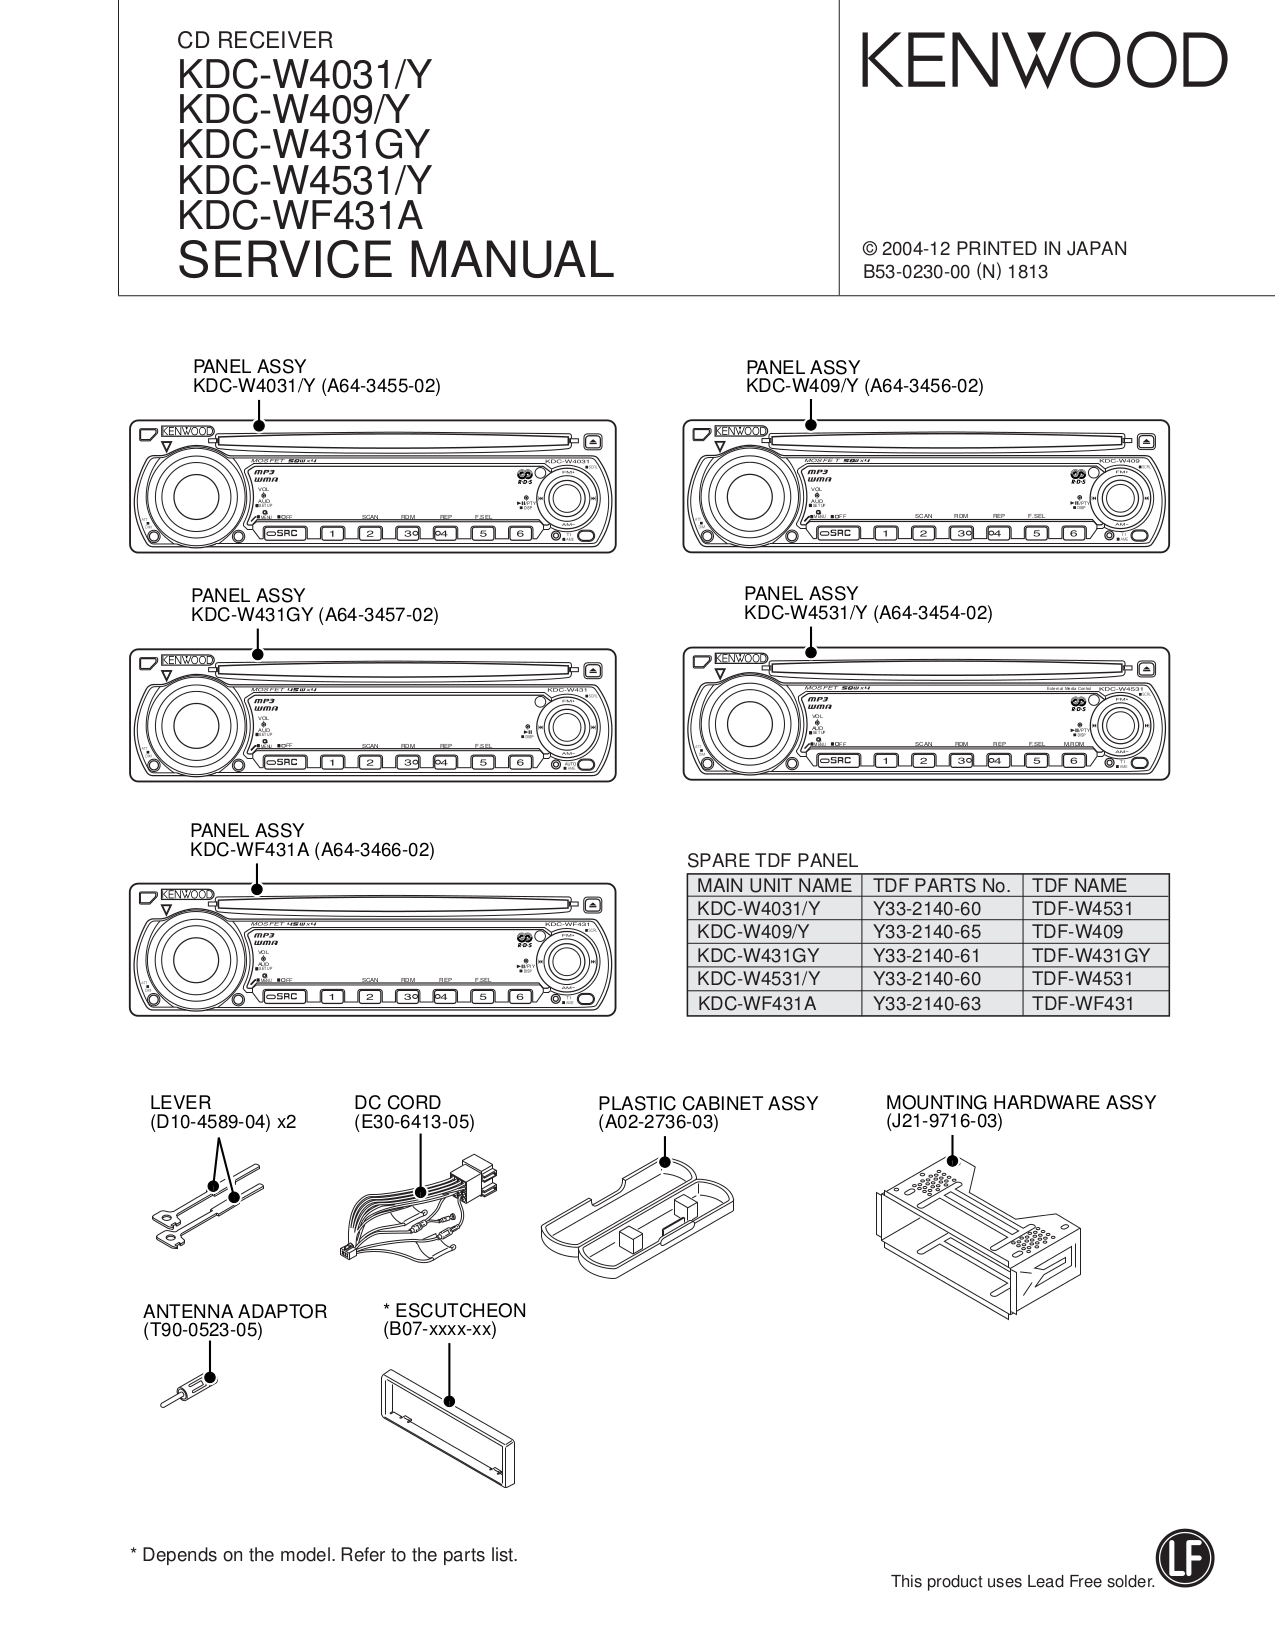 KDC W4031_W409_W431GY_W4531_WF431A.pdf 0 kenwood kdc 135 wiring diagram kenwood harness diagram \u2022 wiring Kenwood DDX470 Wiring Harness Diagram at eliteediting.co